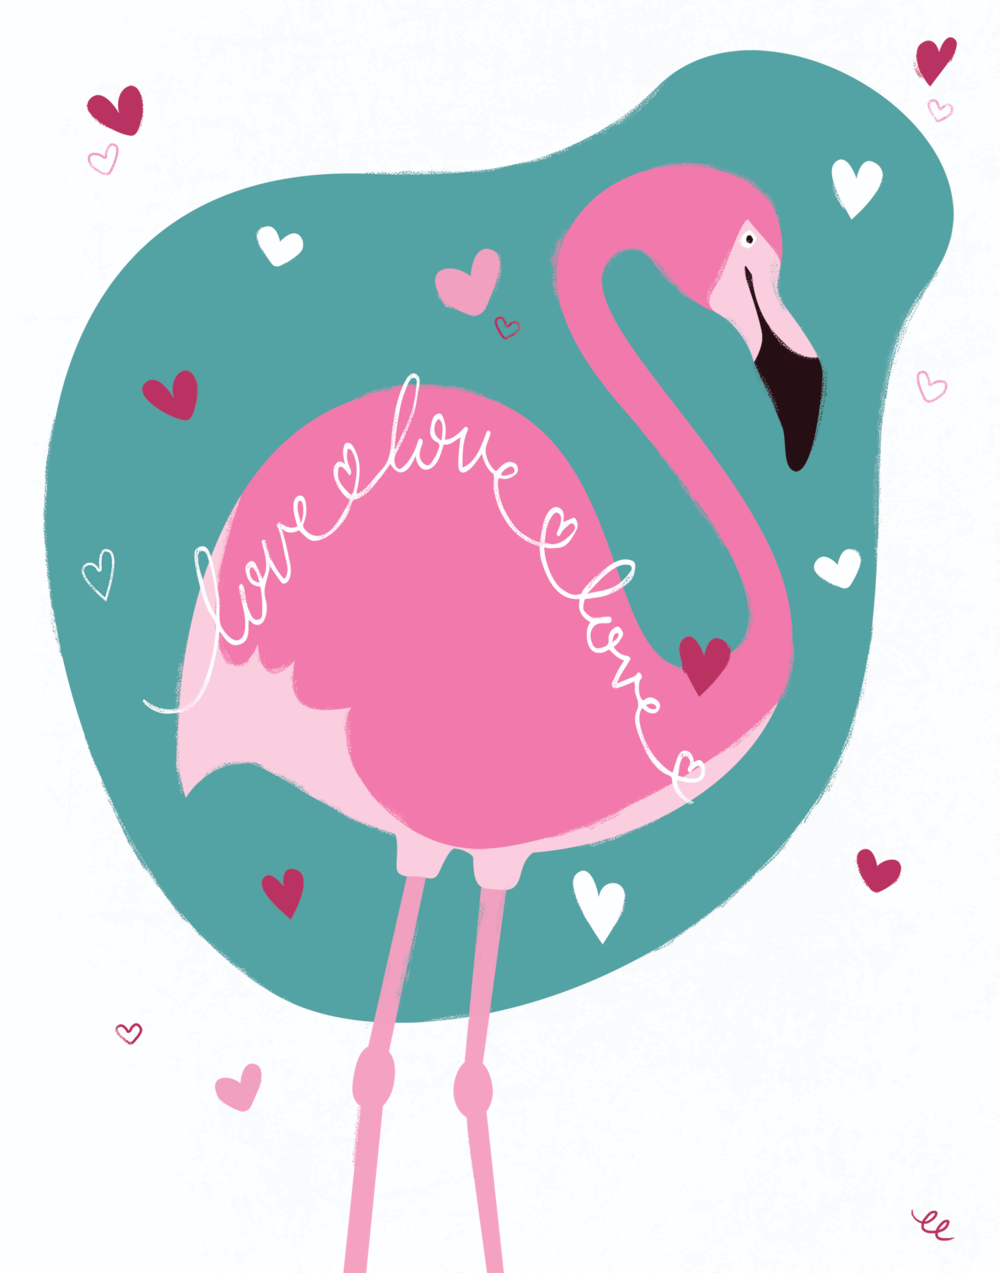 WEEK 6: a Loving Flamingo